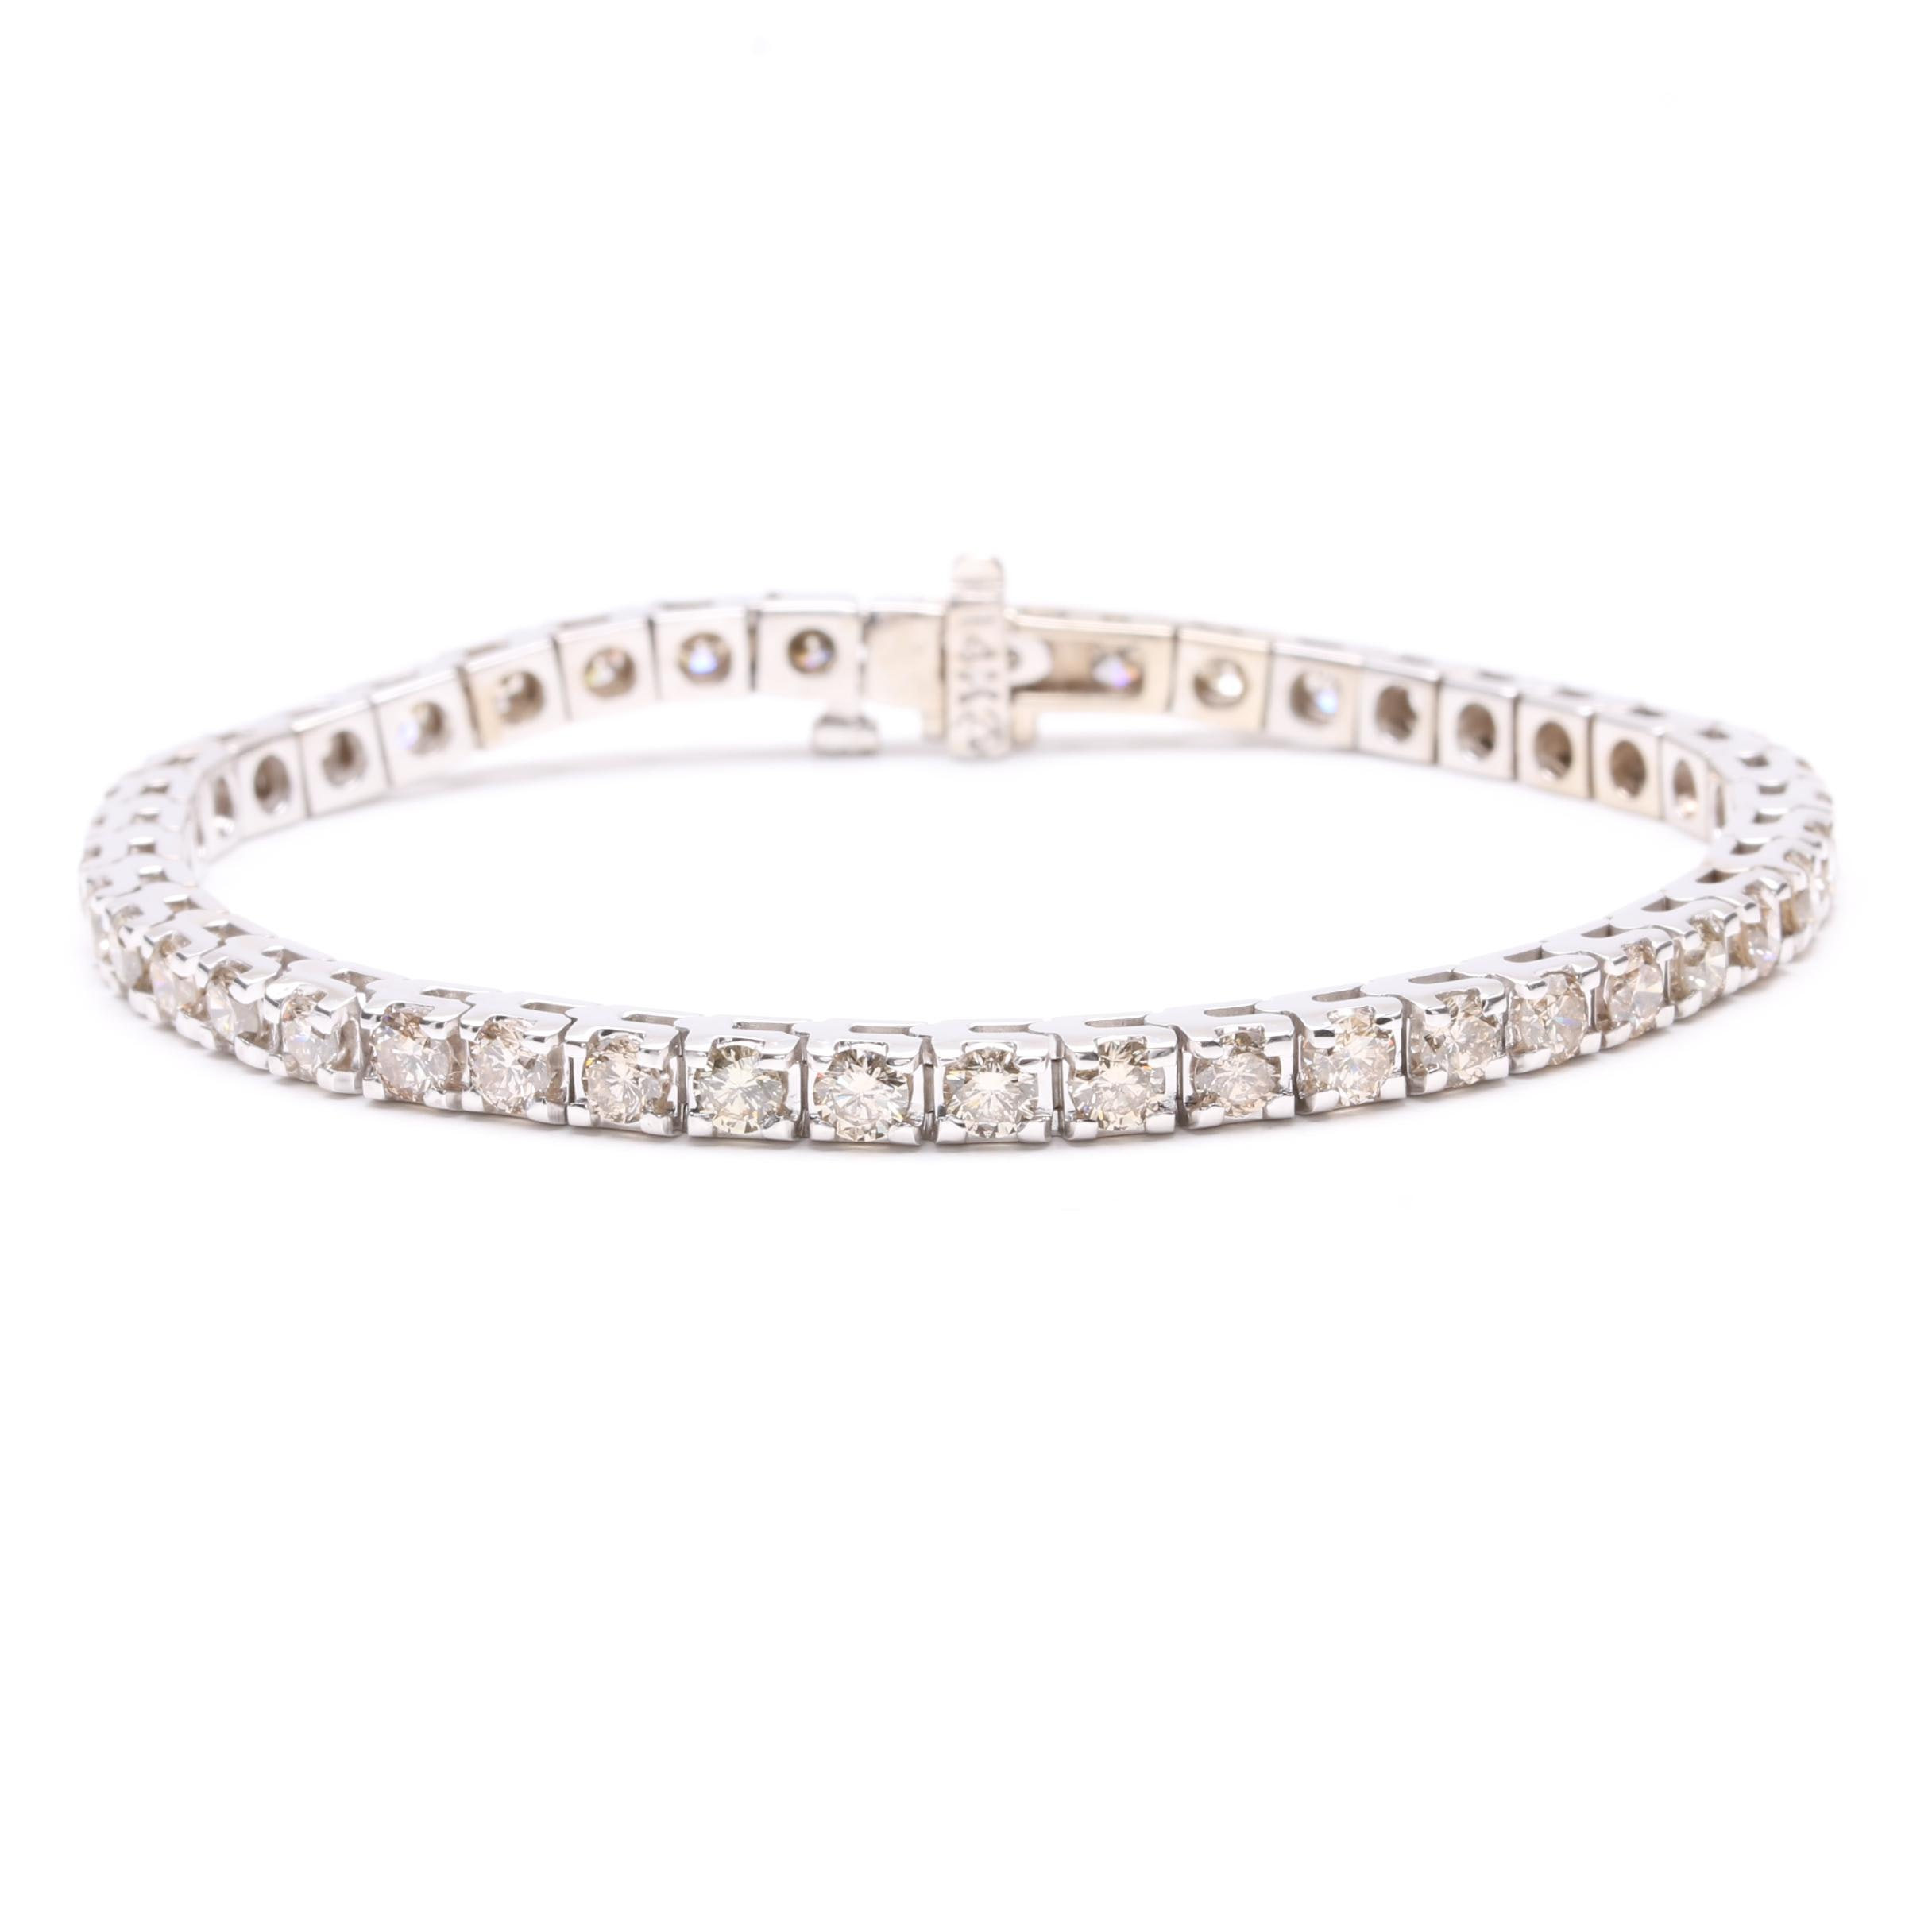 14K White Gold 5.00 CTW Diamond Tennis Bracelet